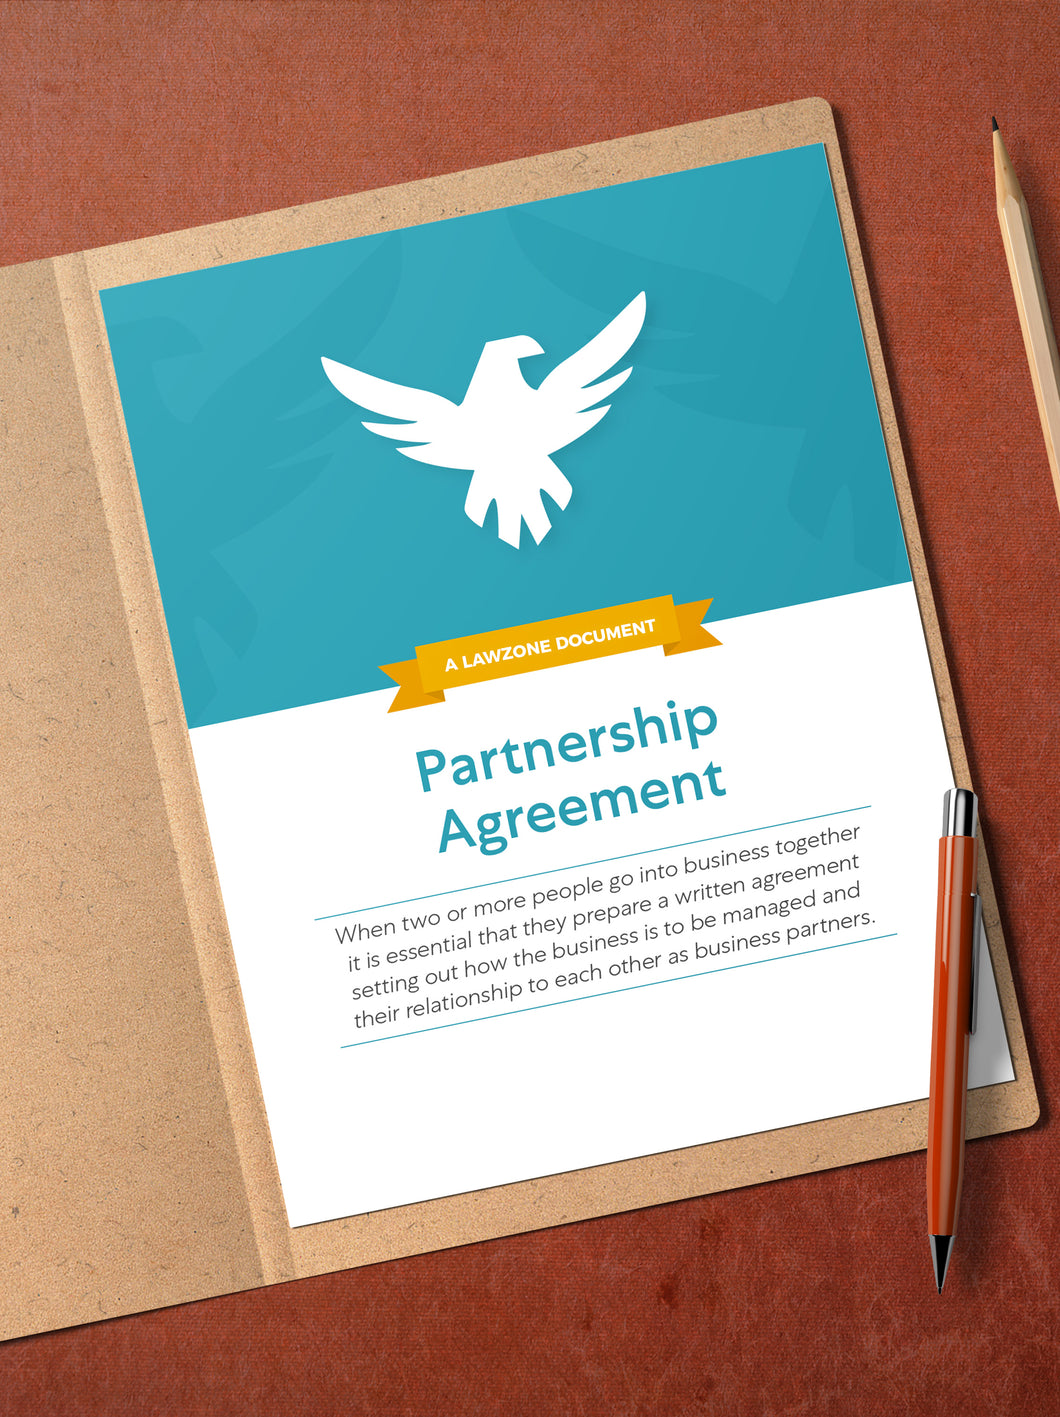 Partnership Agreement | DIY Law Document | Legal Advice Online